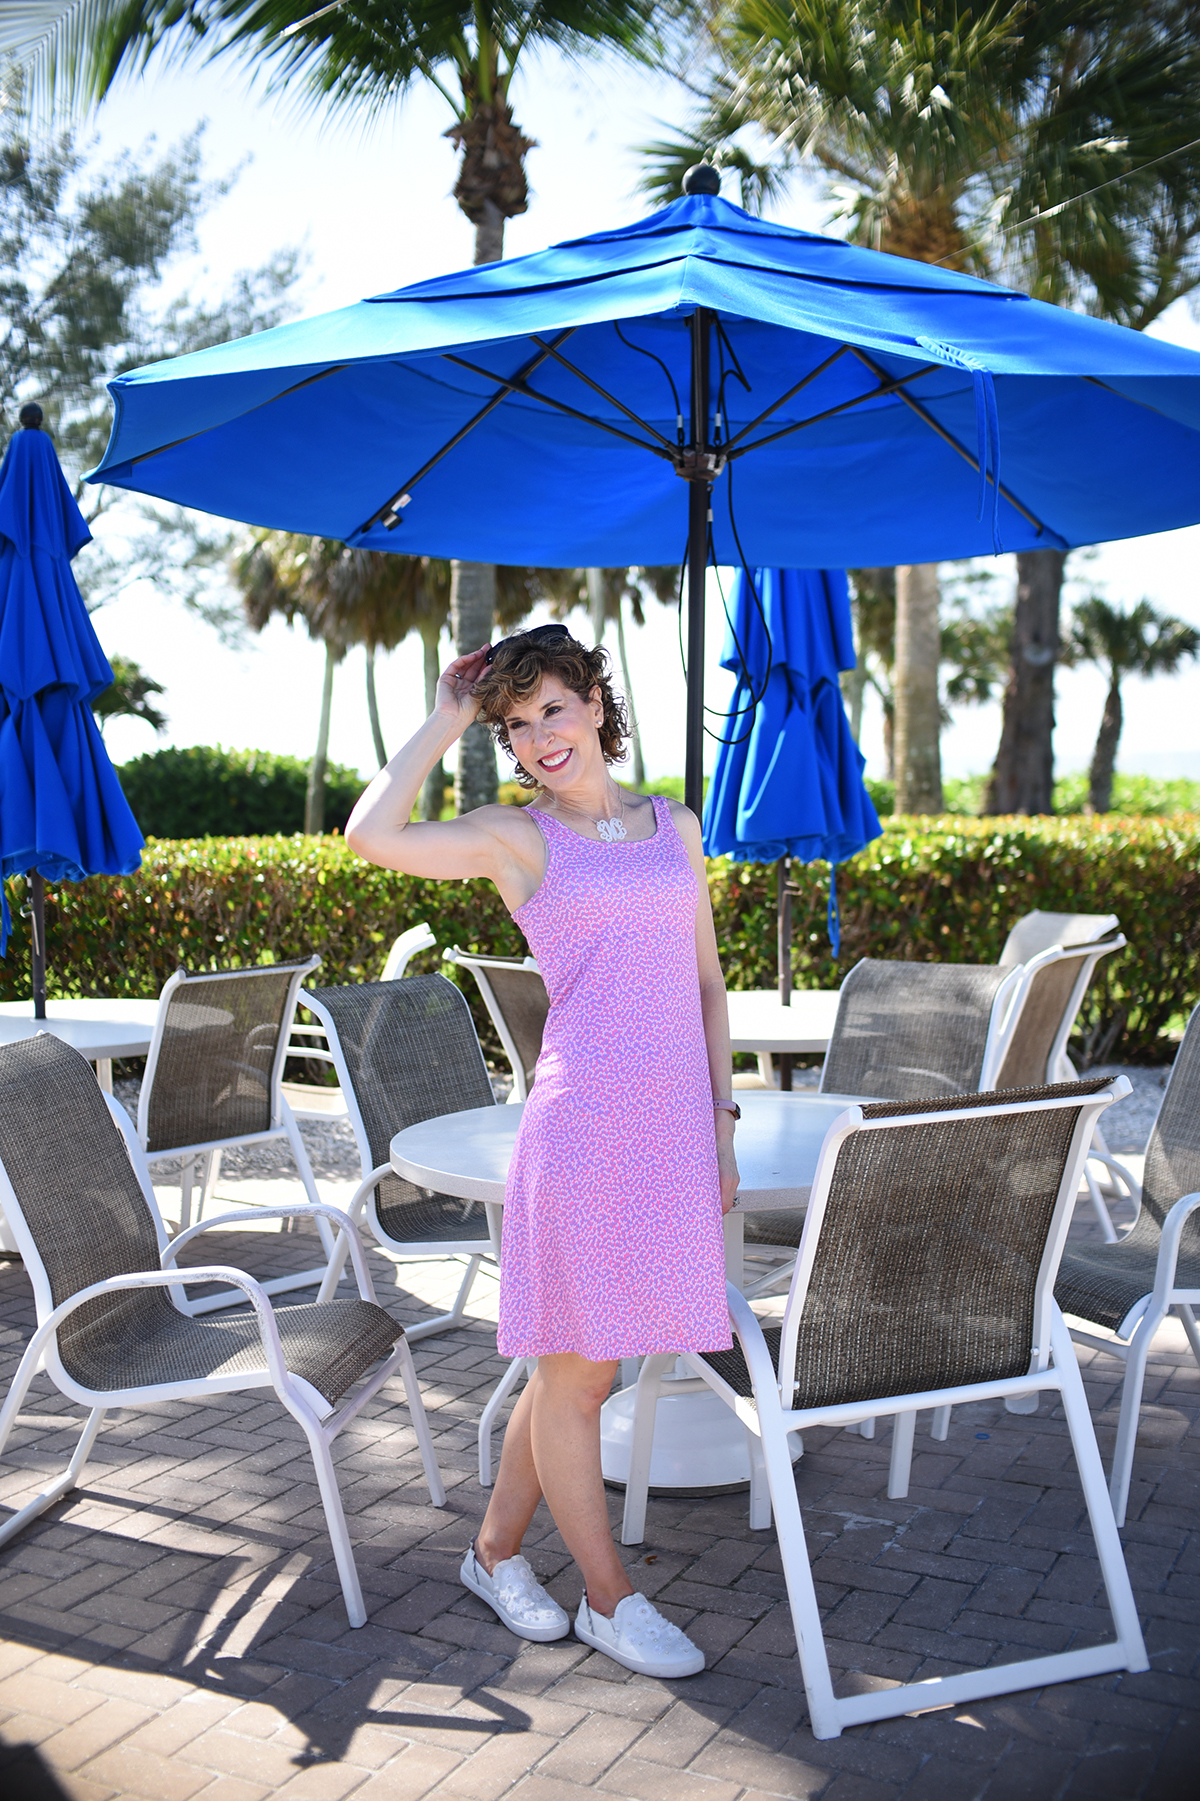 woman on beach vacation wearing pink dress standing under table with blue umbrella